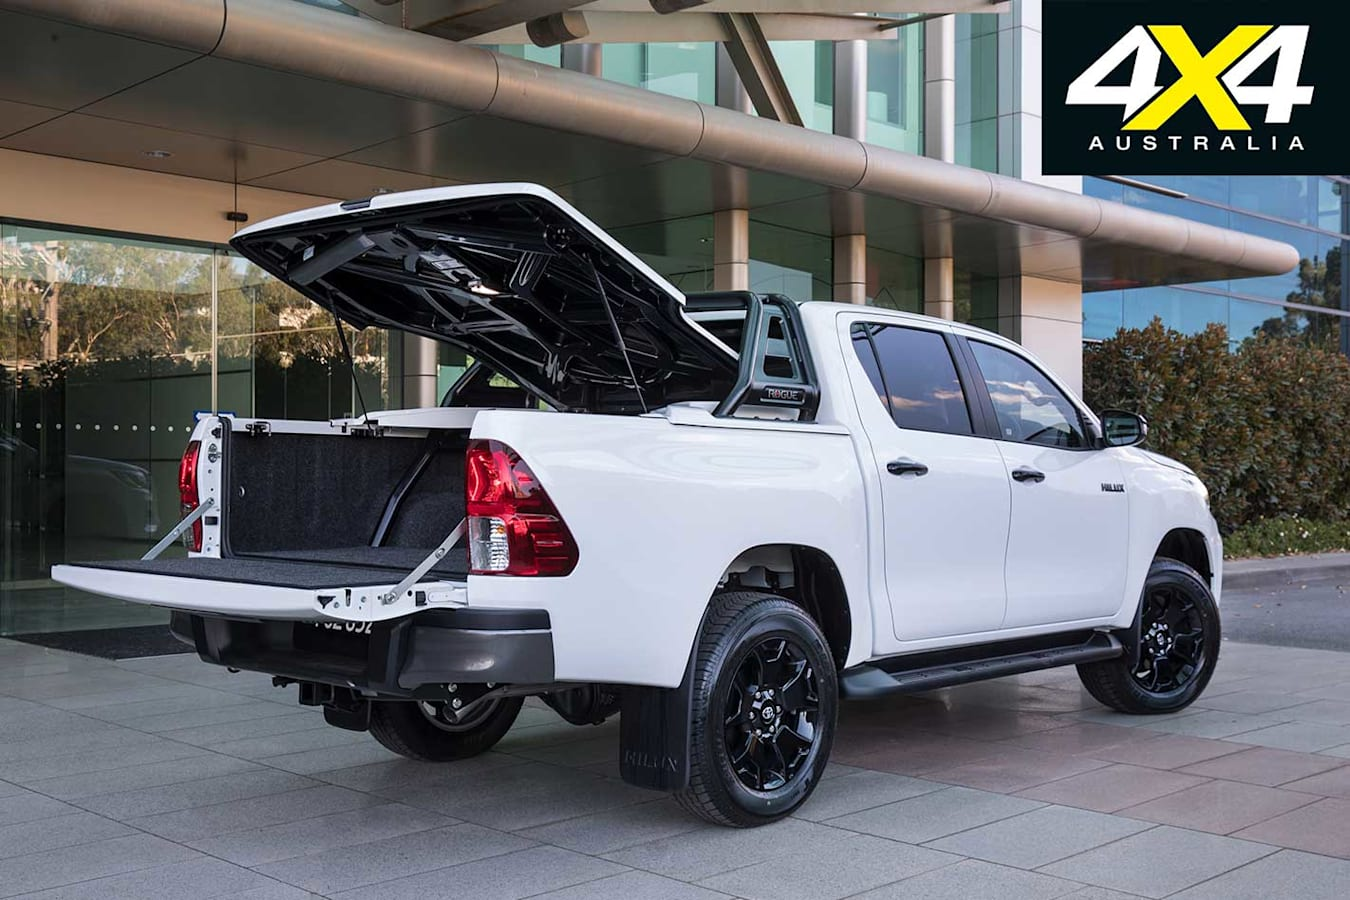 2018 Toyota Hilux Rogue Rear Bed Jpg